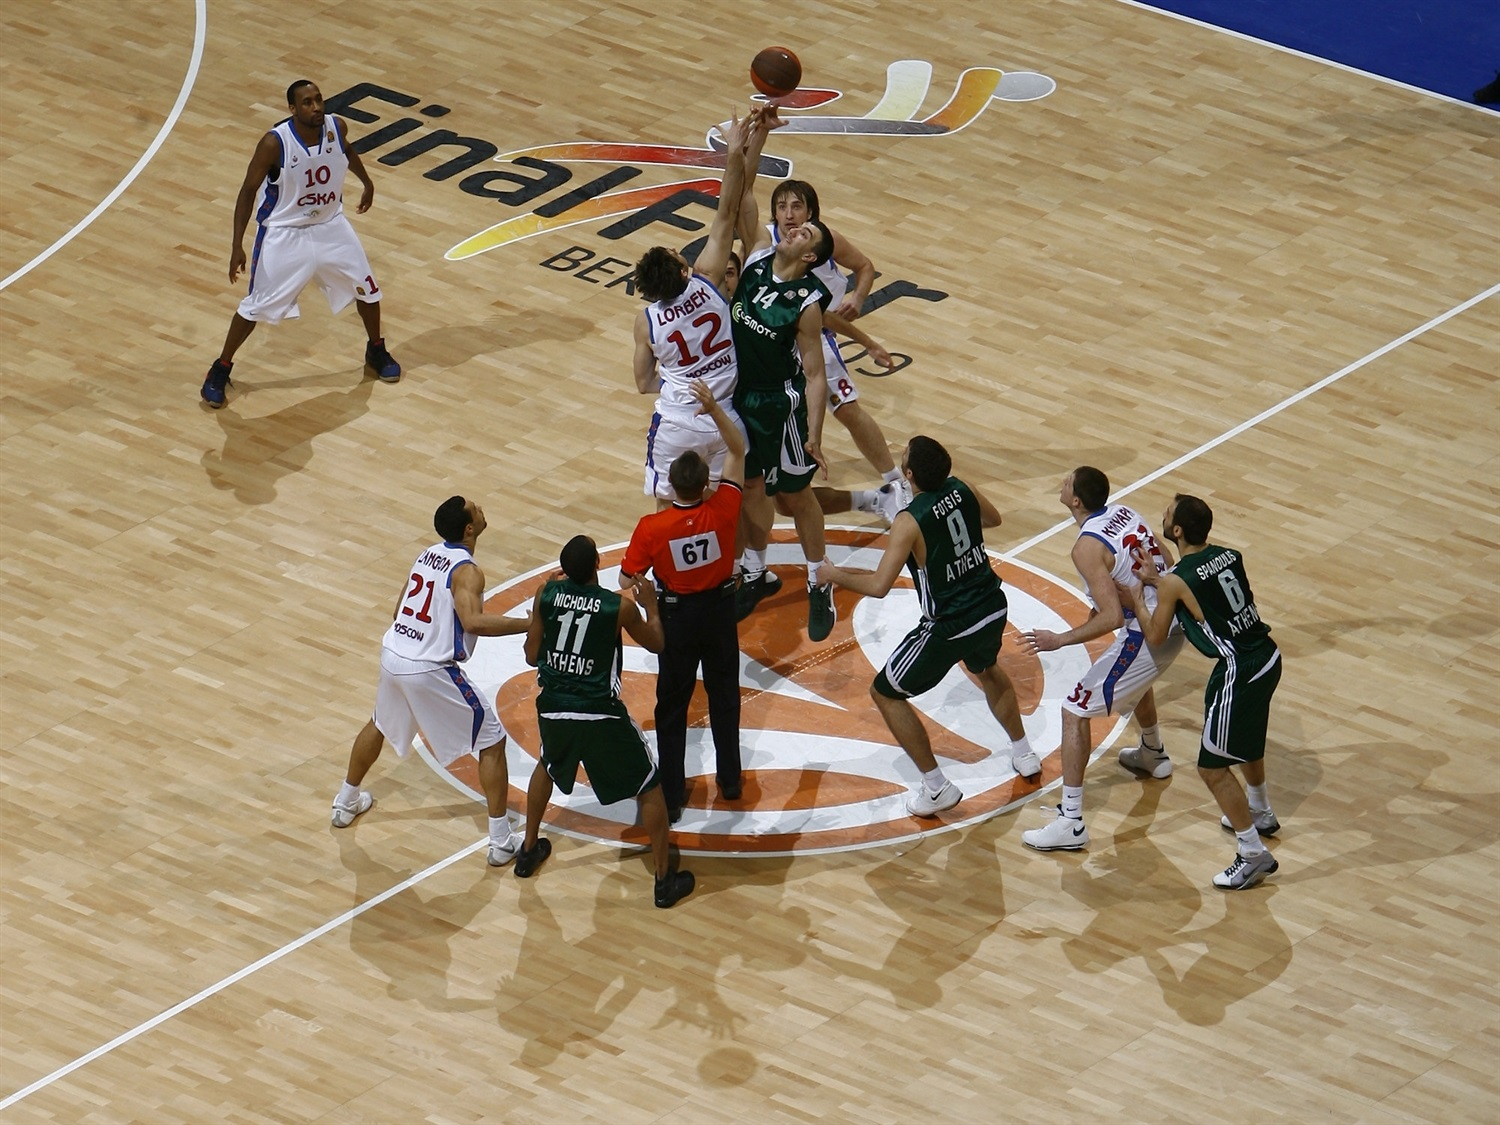 Tip-Off Panathinaikos vs. CSKA Moscow - Final Four Berlin 2009 - EB08